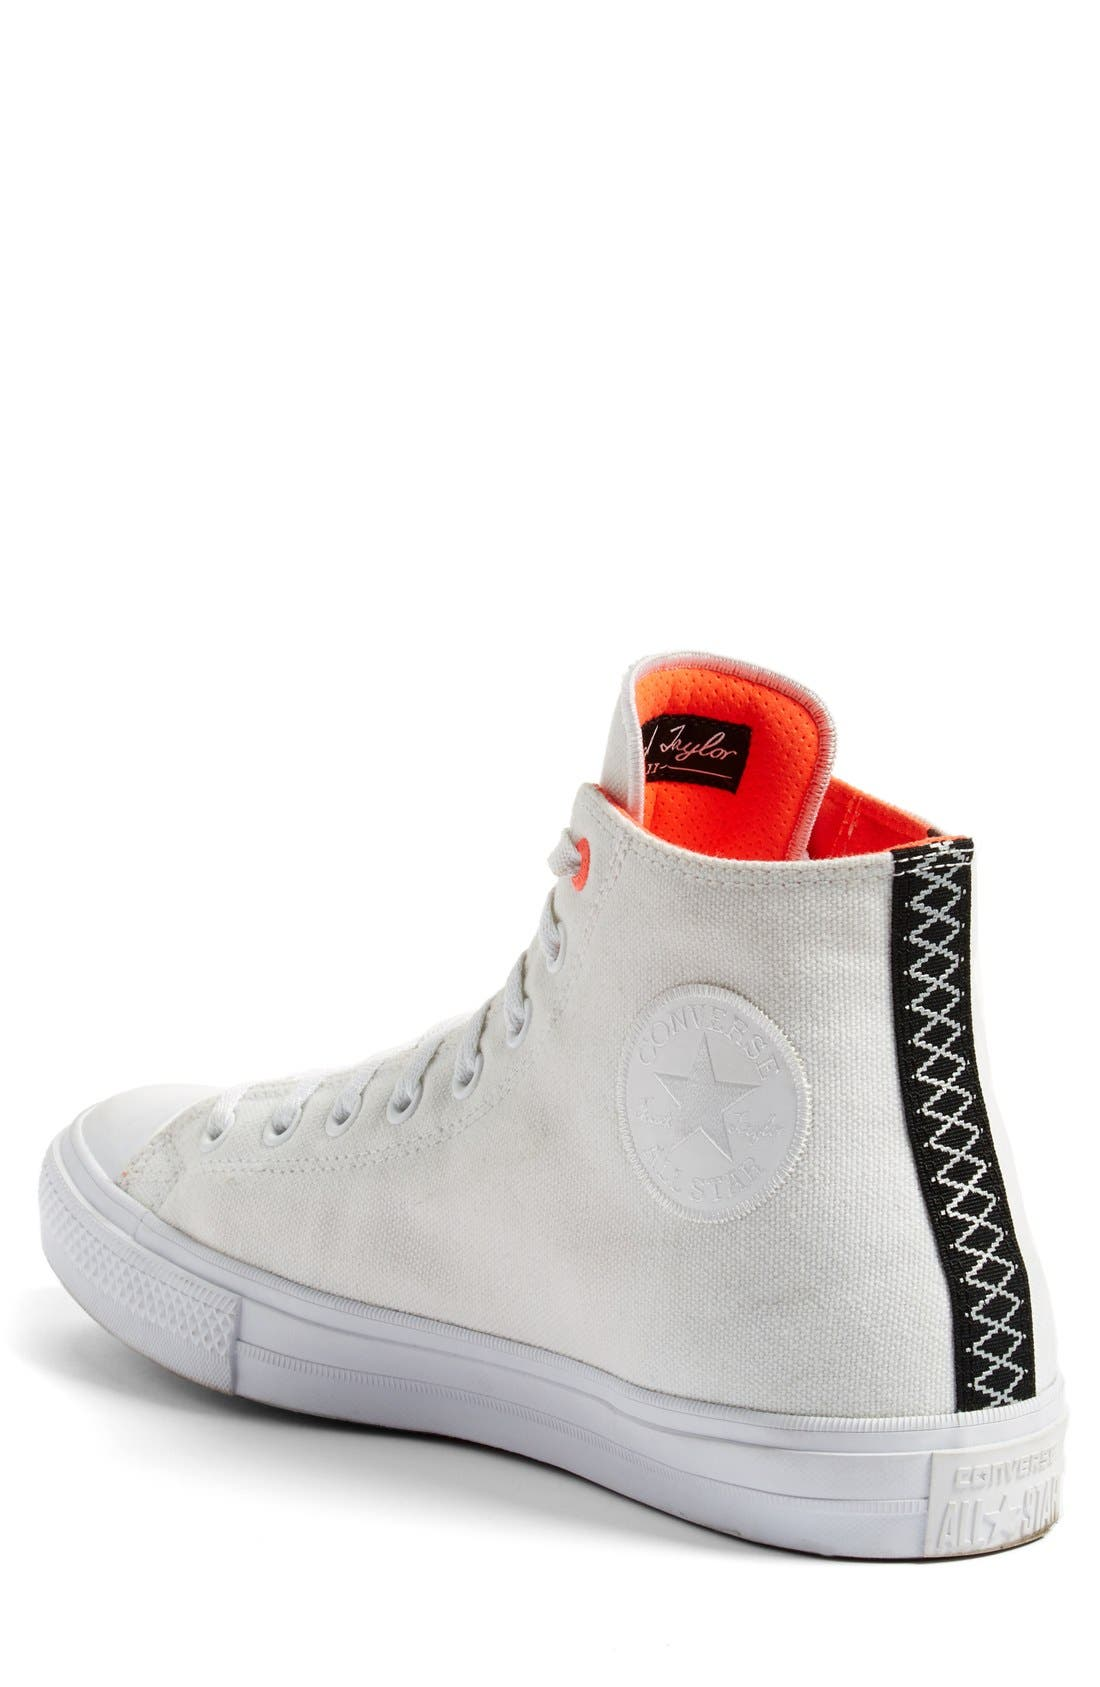 Alternate Image 2  - Converse Chuck Taylor® All Star® II 'Shield' Water Repellent High Top Sneaker (Women)